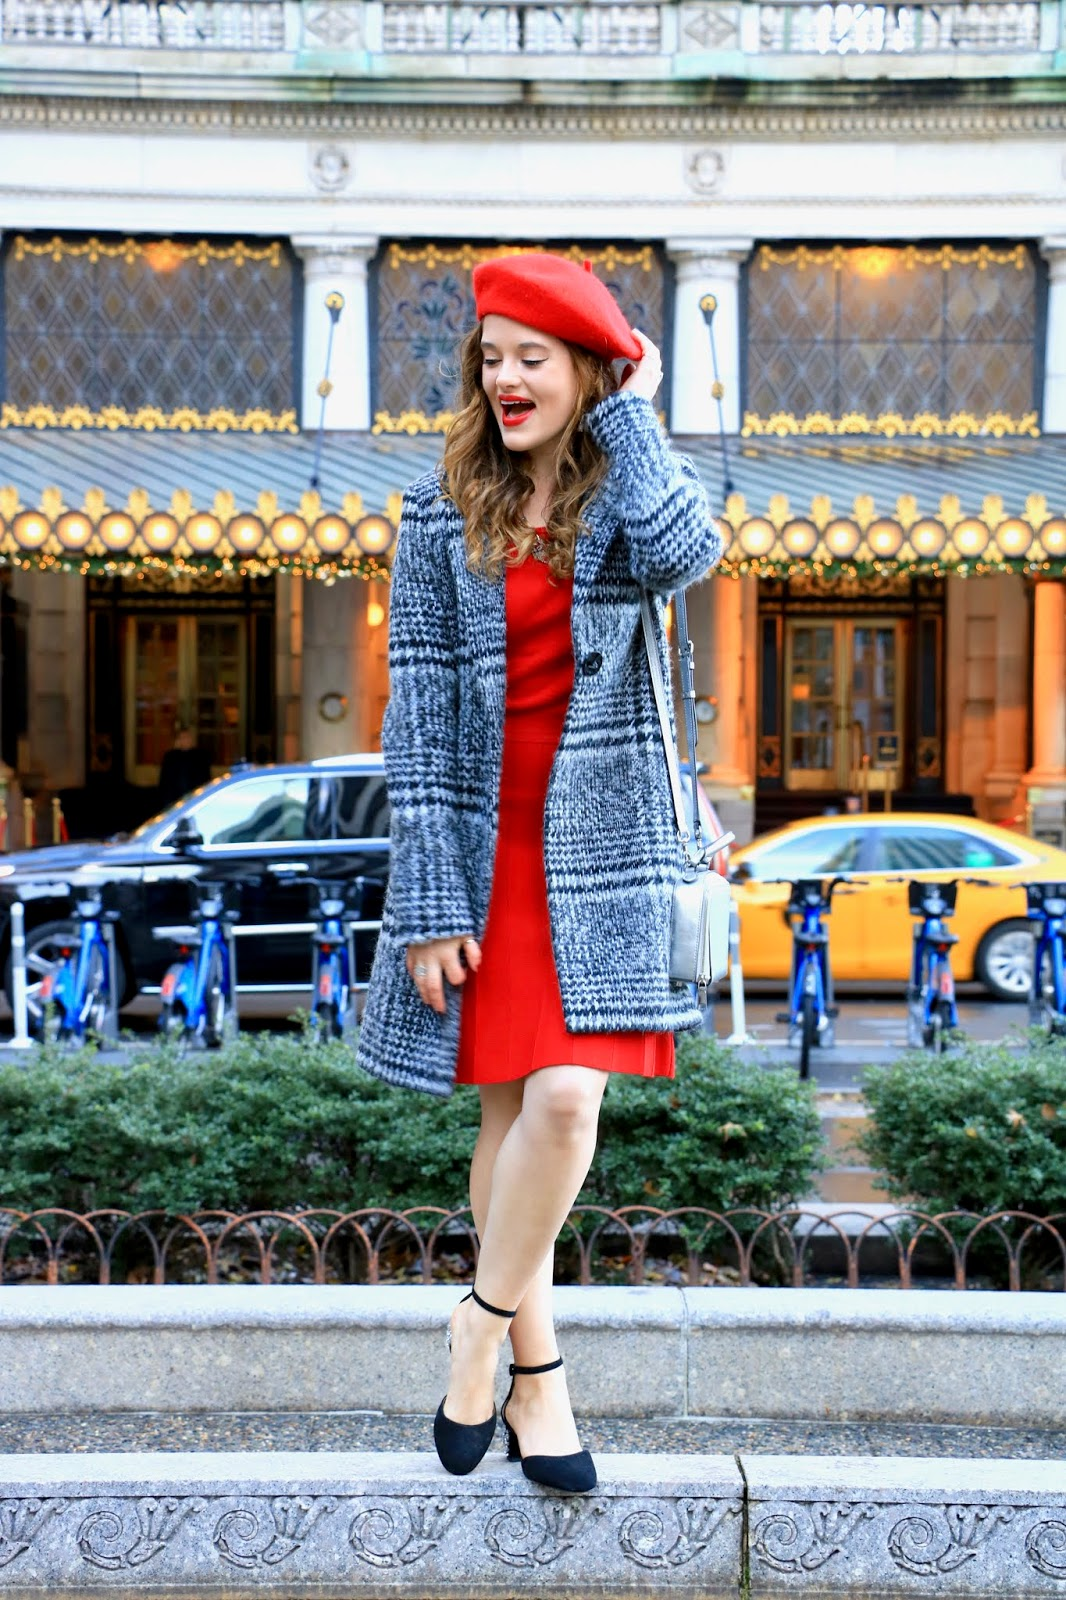 Nyc fashion blogger Kathleen Harper's 2018 holiday outfit ideas